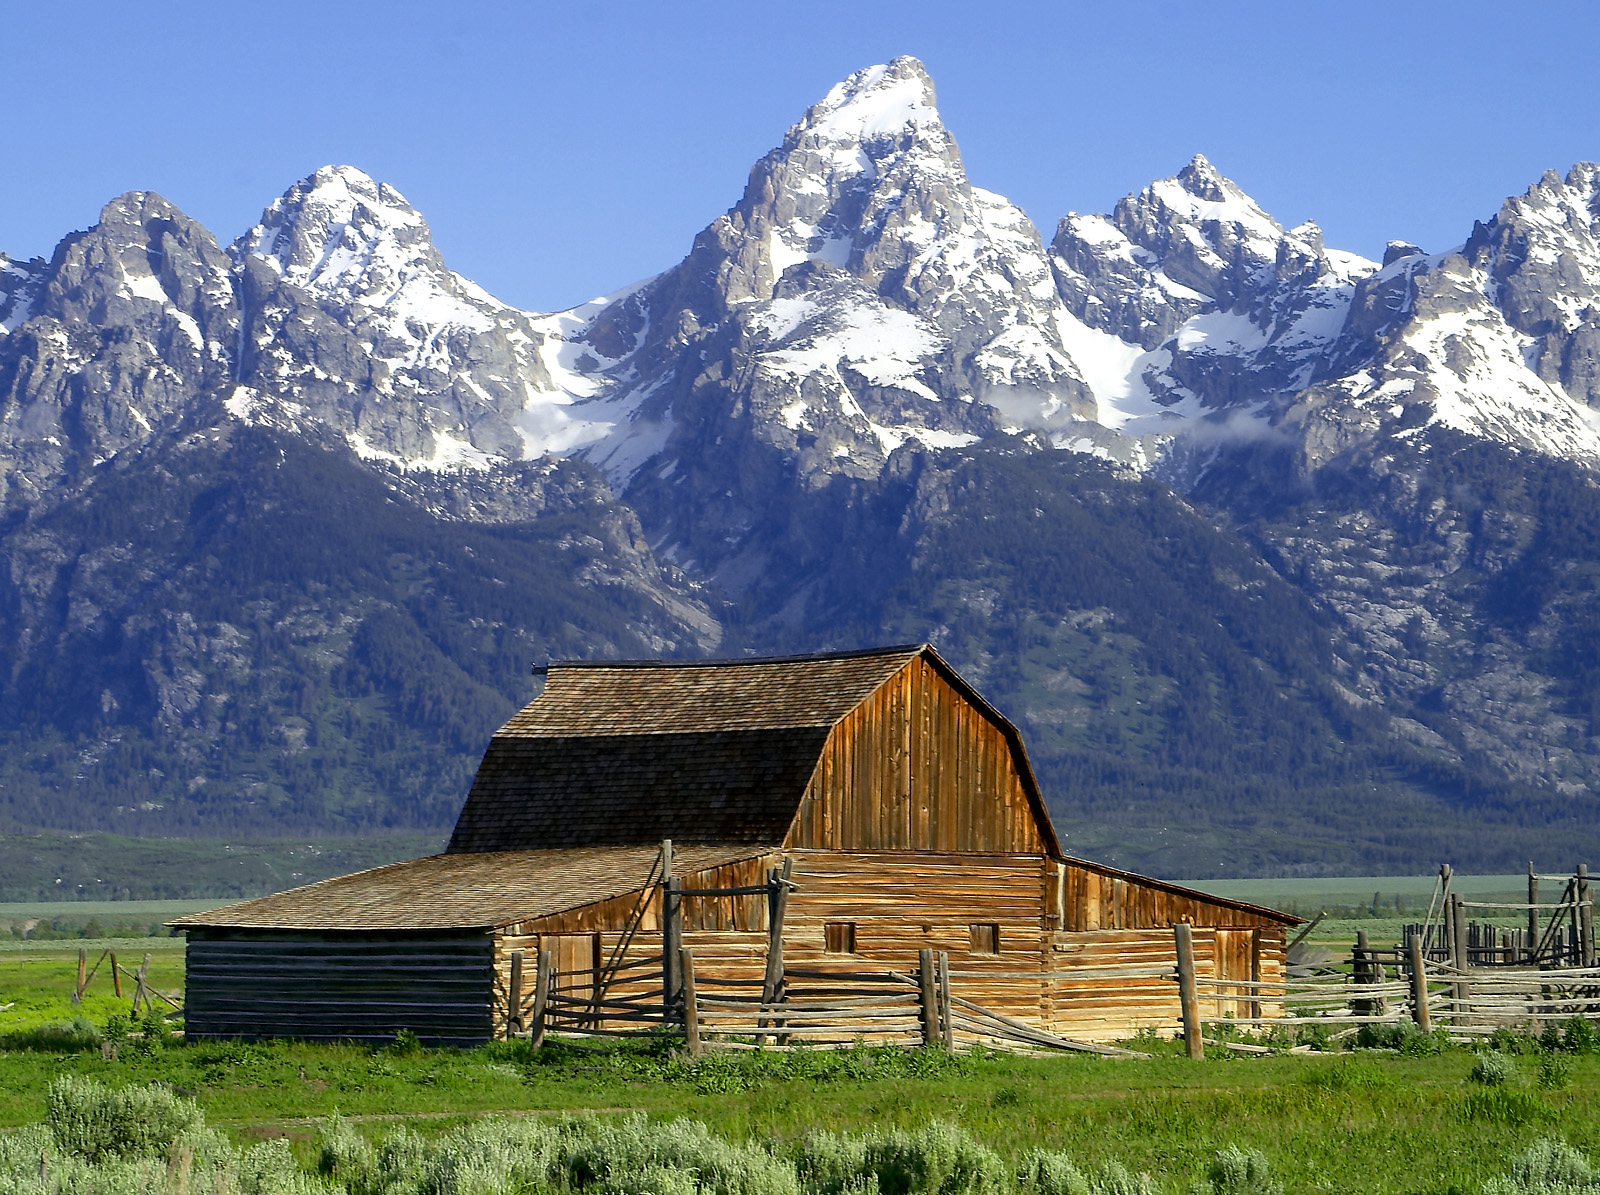 https://upload.wikimedia.org/wikipedia/commons/d/d0/Barns_grand_tetons.jpg